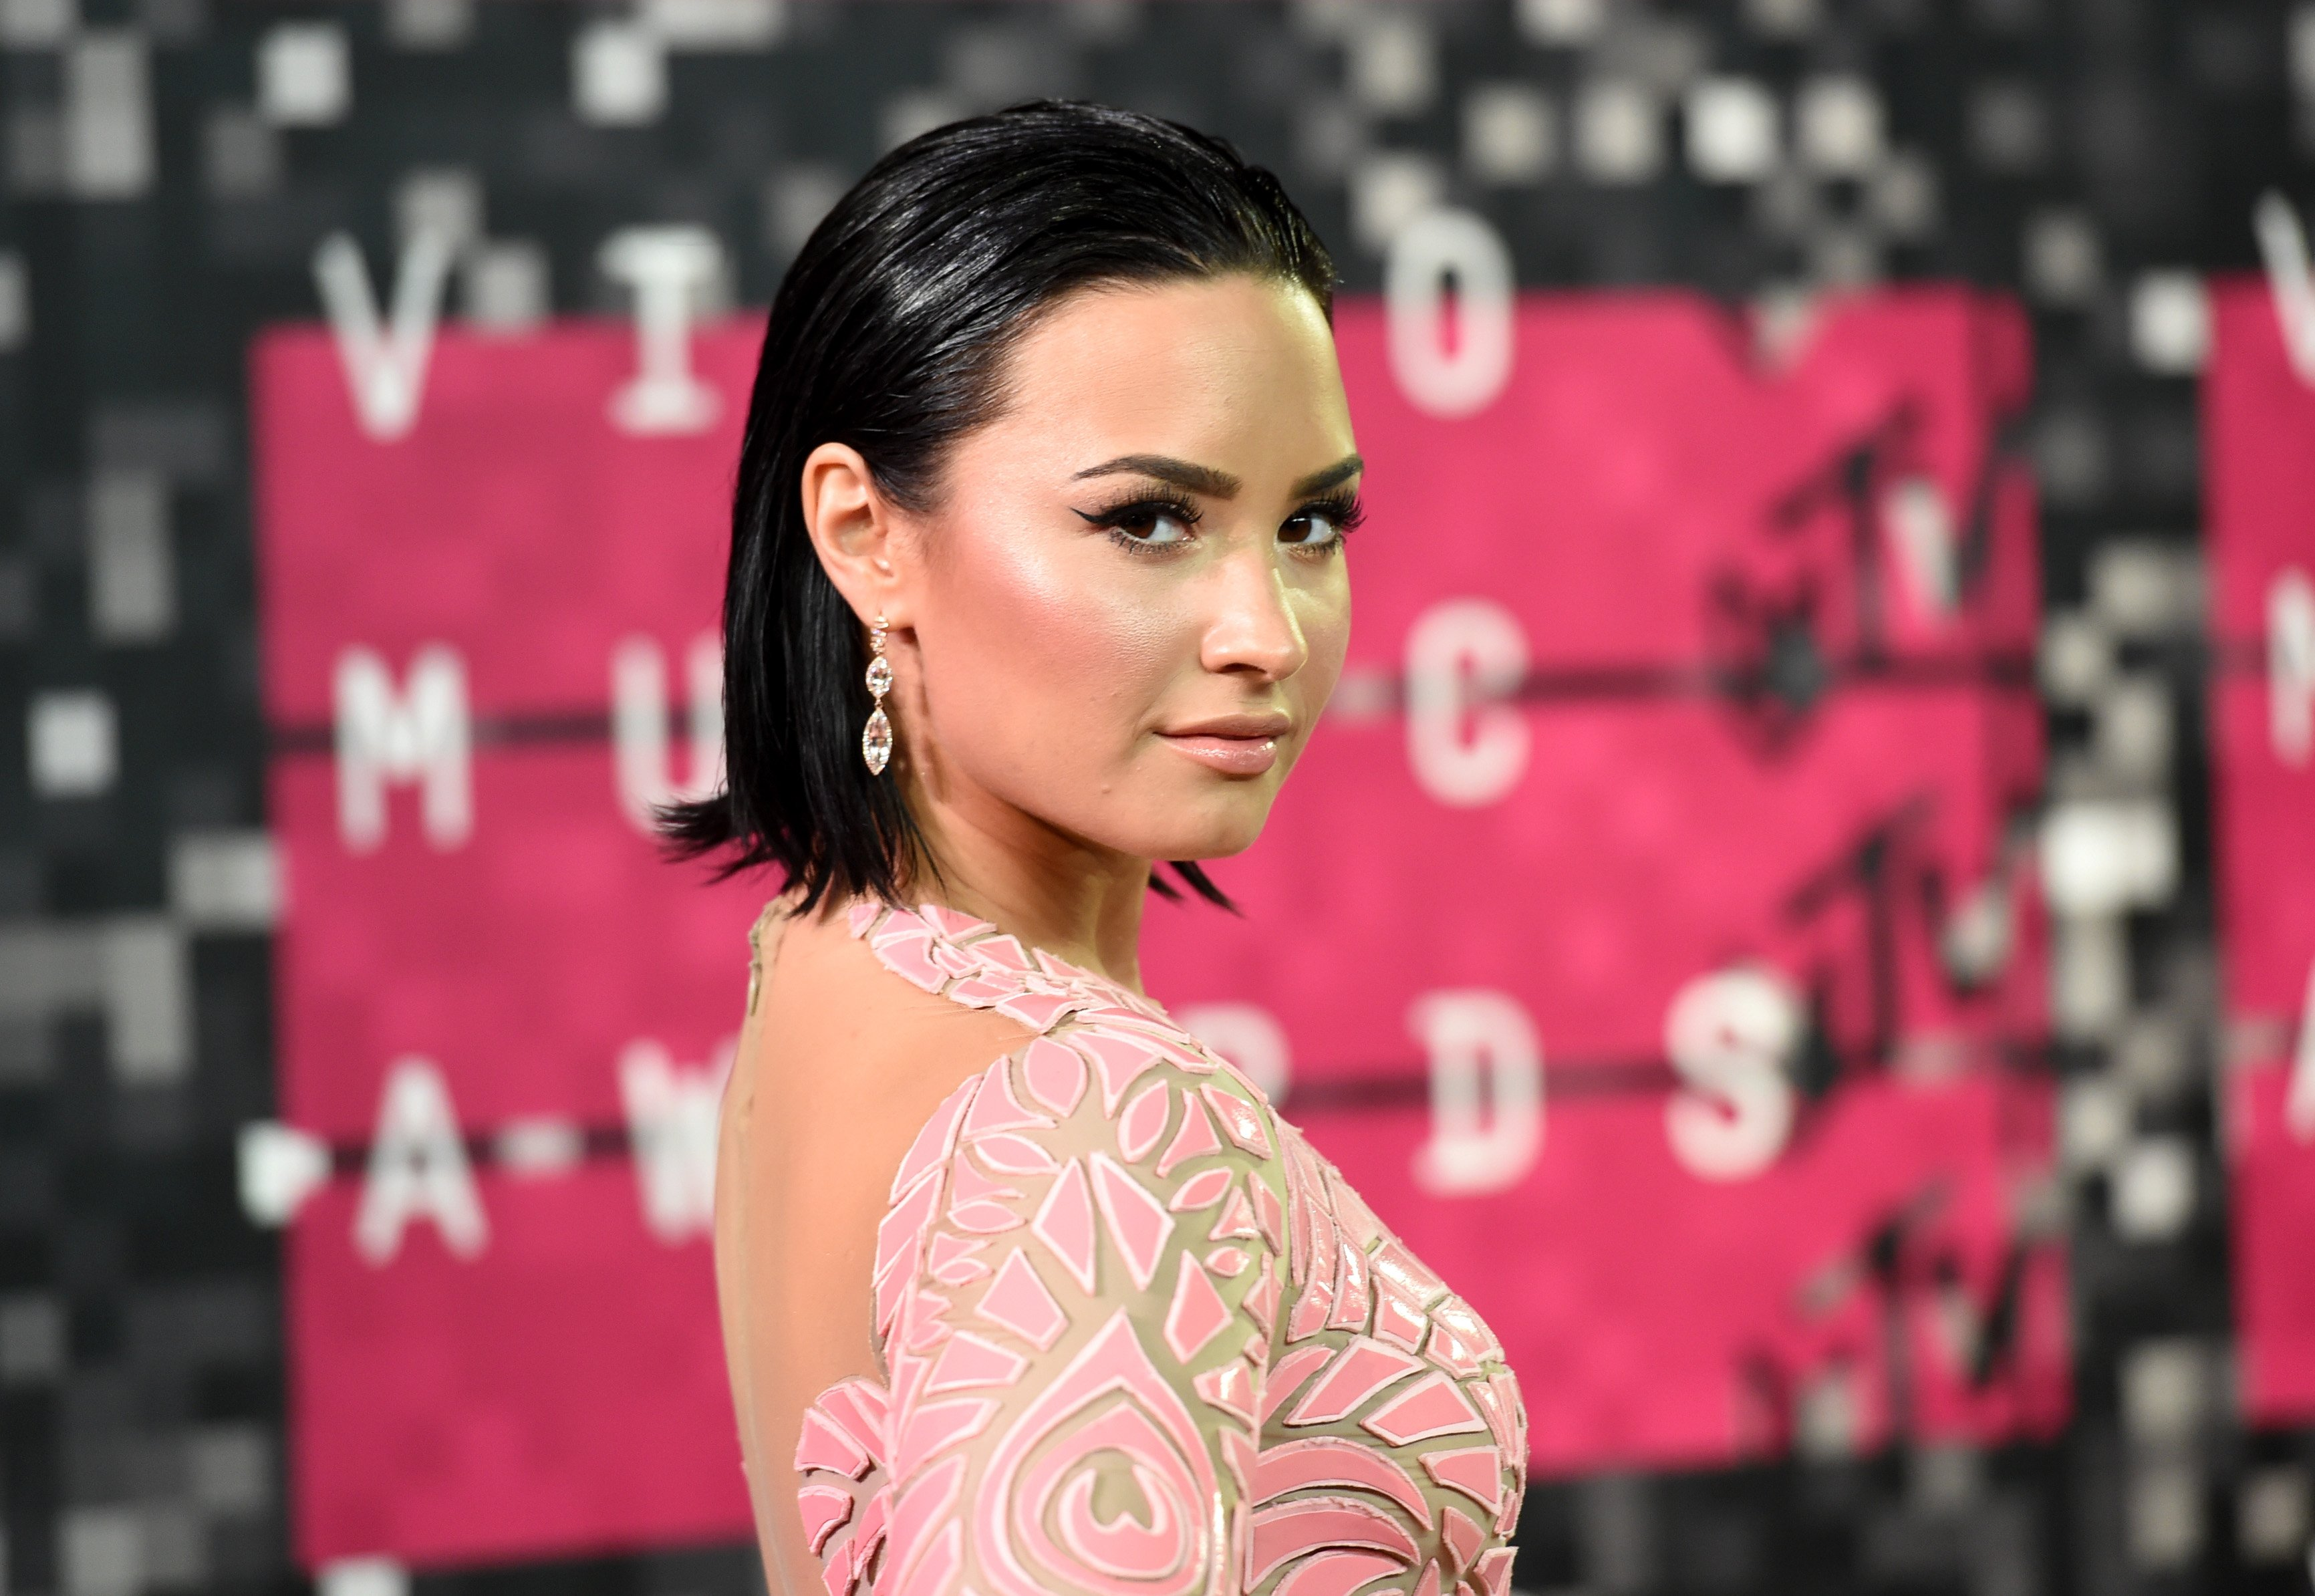 Demi Lovato attends the 2015 MTV Video Music Awards at Microsoft Theater on August 30, 2015 in Los Angeles, California | Photo: Getty Images